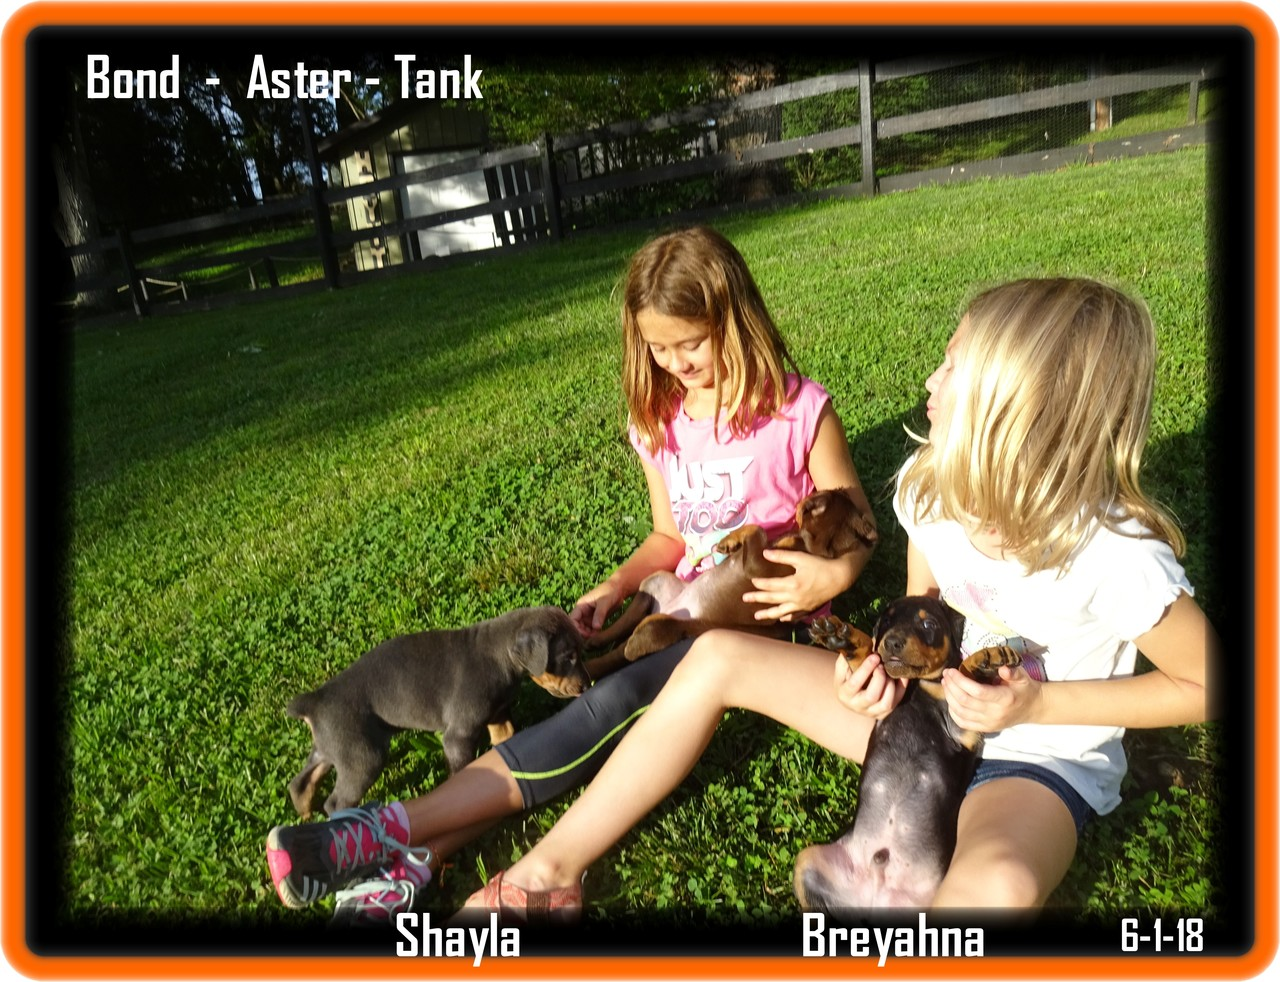 Bond - Aster - Tank with Shayla & Breyahna...out for fun and games with our youngest staff.